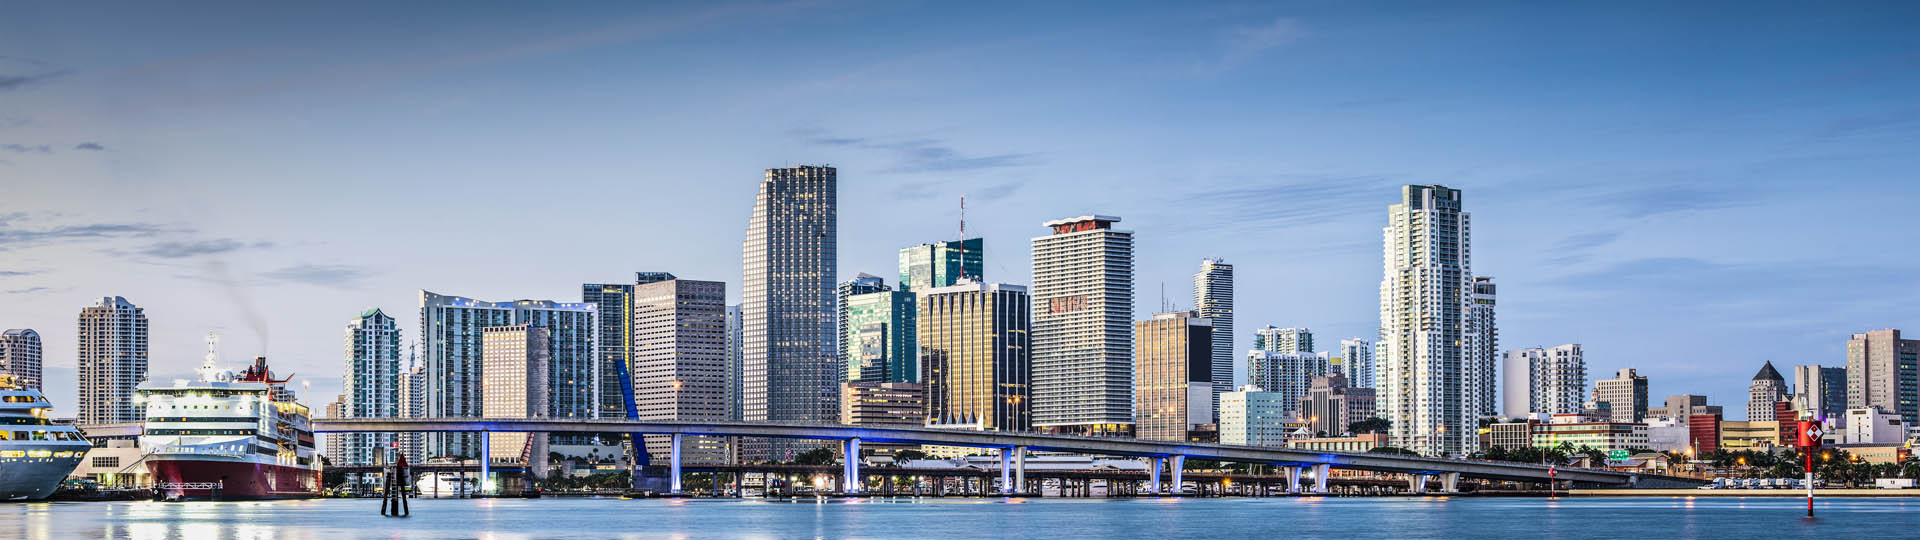 Investors In Miami, Florida